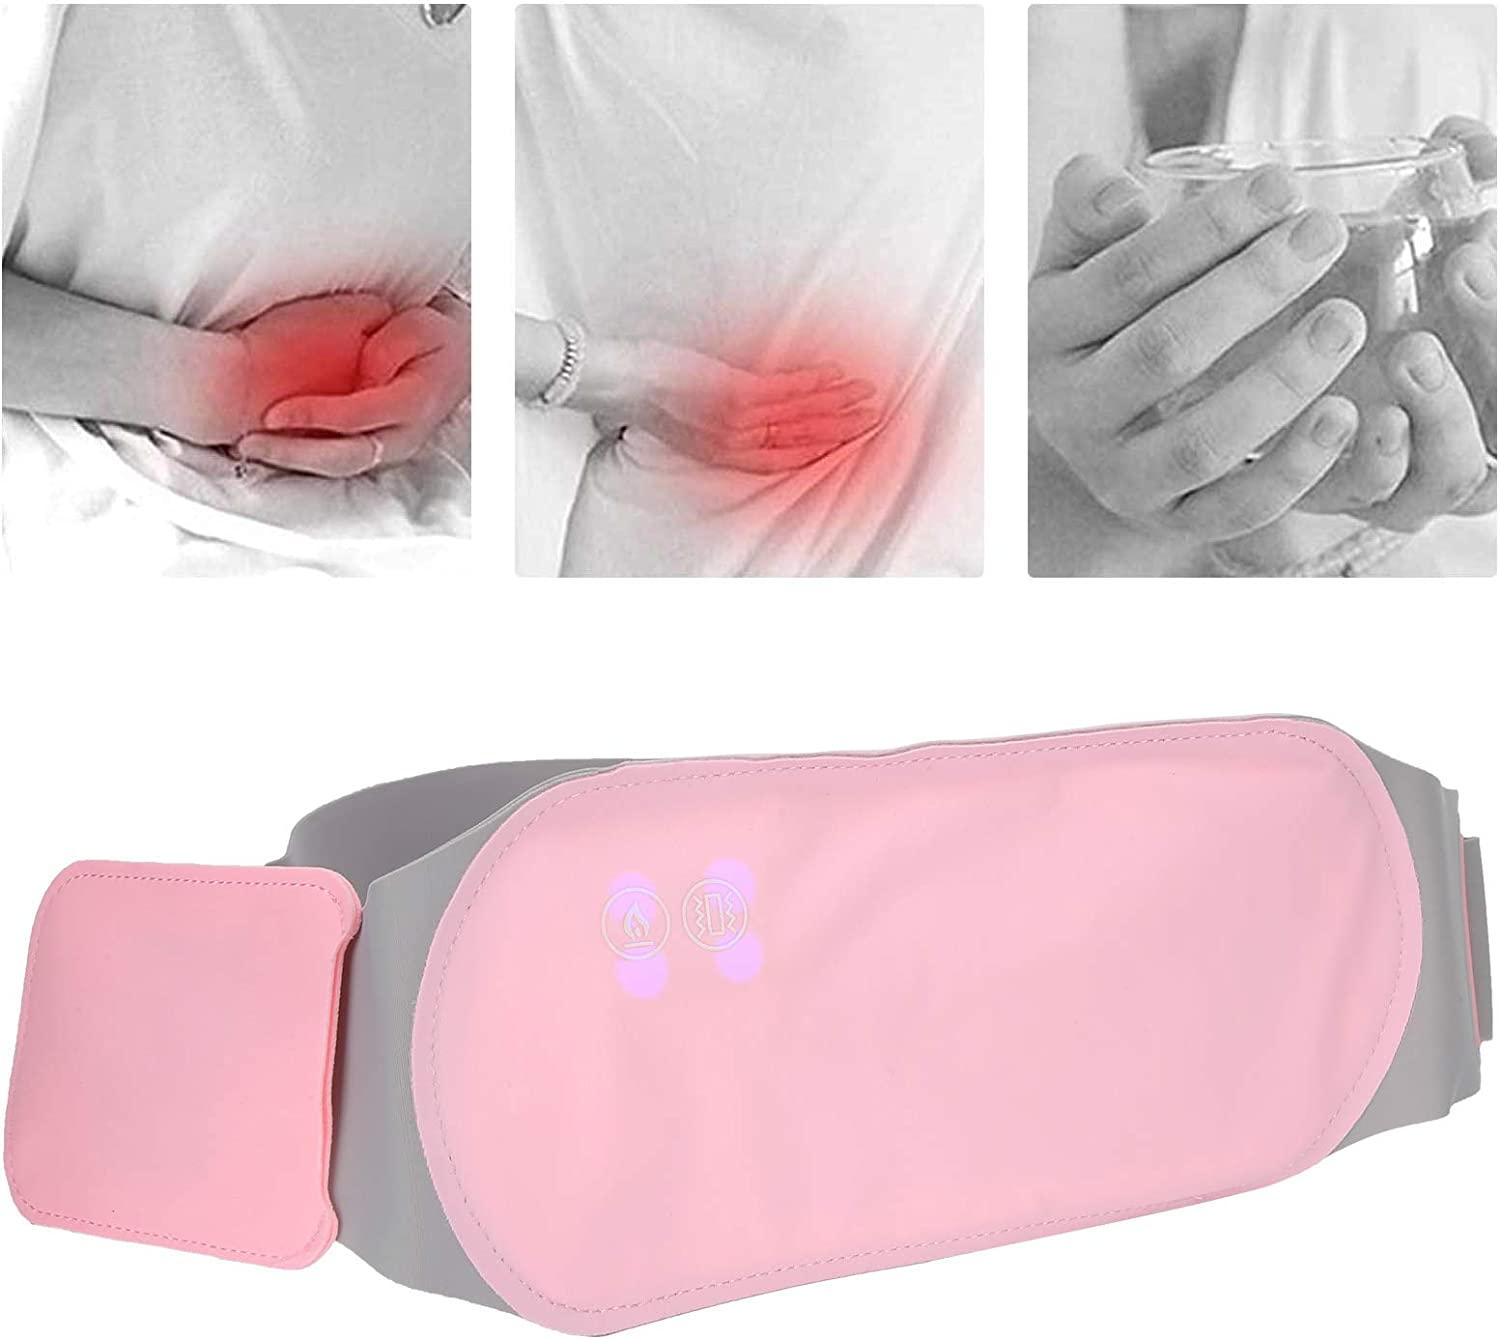 Menstrual Heating Pad Portable Electric Heated Waist Belt Women Girl Back Belly Heating Pad Warm Uterus Belt 3 Gears Menstrual Heating Pad Waterproof Electric Waist Heater For Cramps